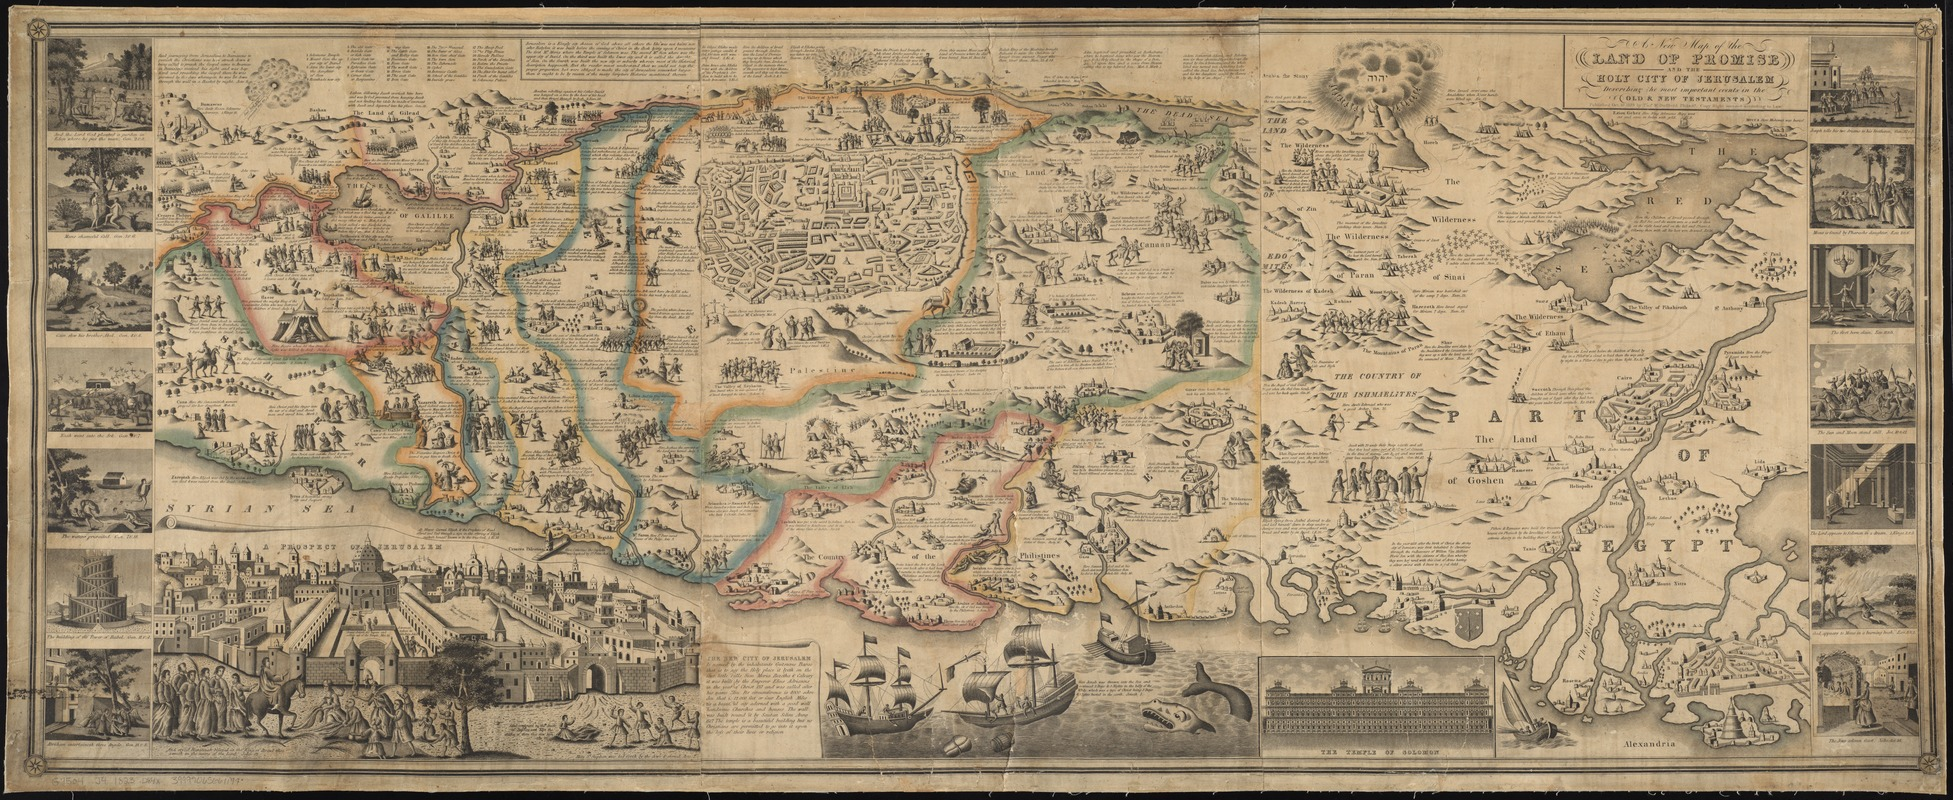 A new map of the Land of Promise and the holy city of Jerusalem describing the most important events in the Old & New Testaments